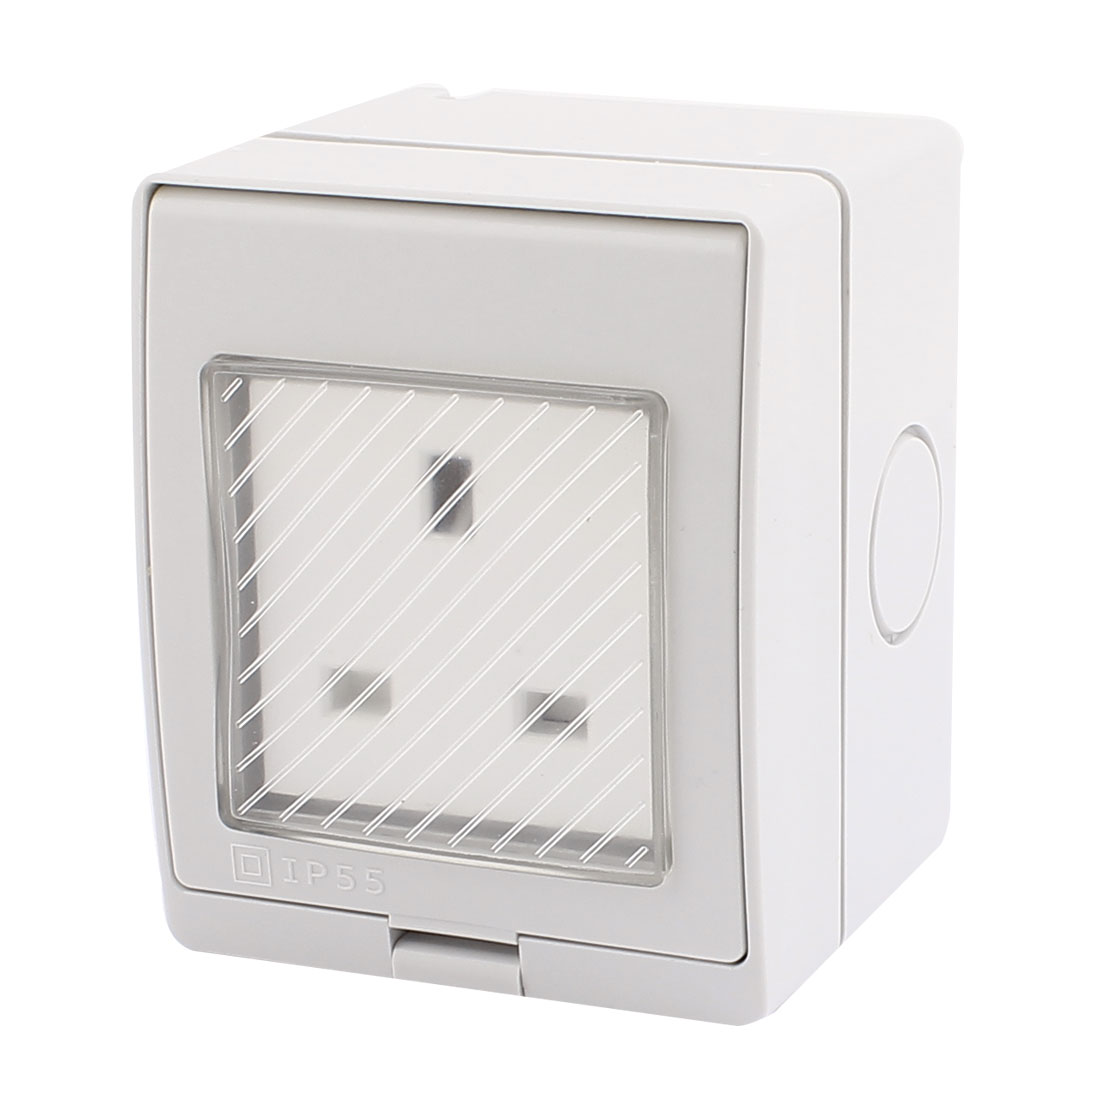 AC 250V 13A UK Socket Electric Power Wall Outlet Plate 86mmx70mmx65mm